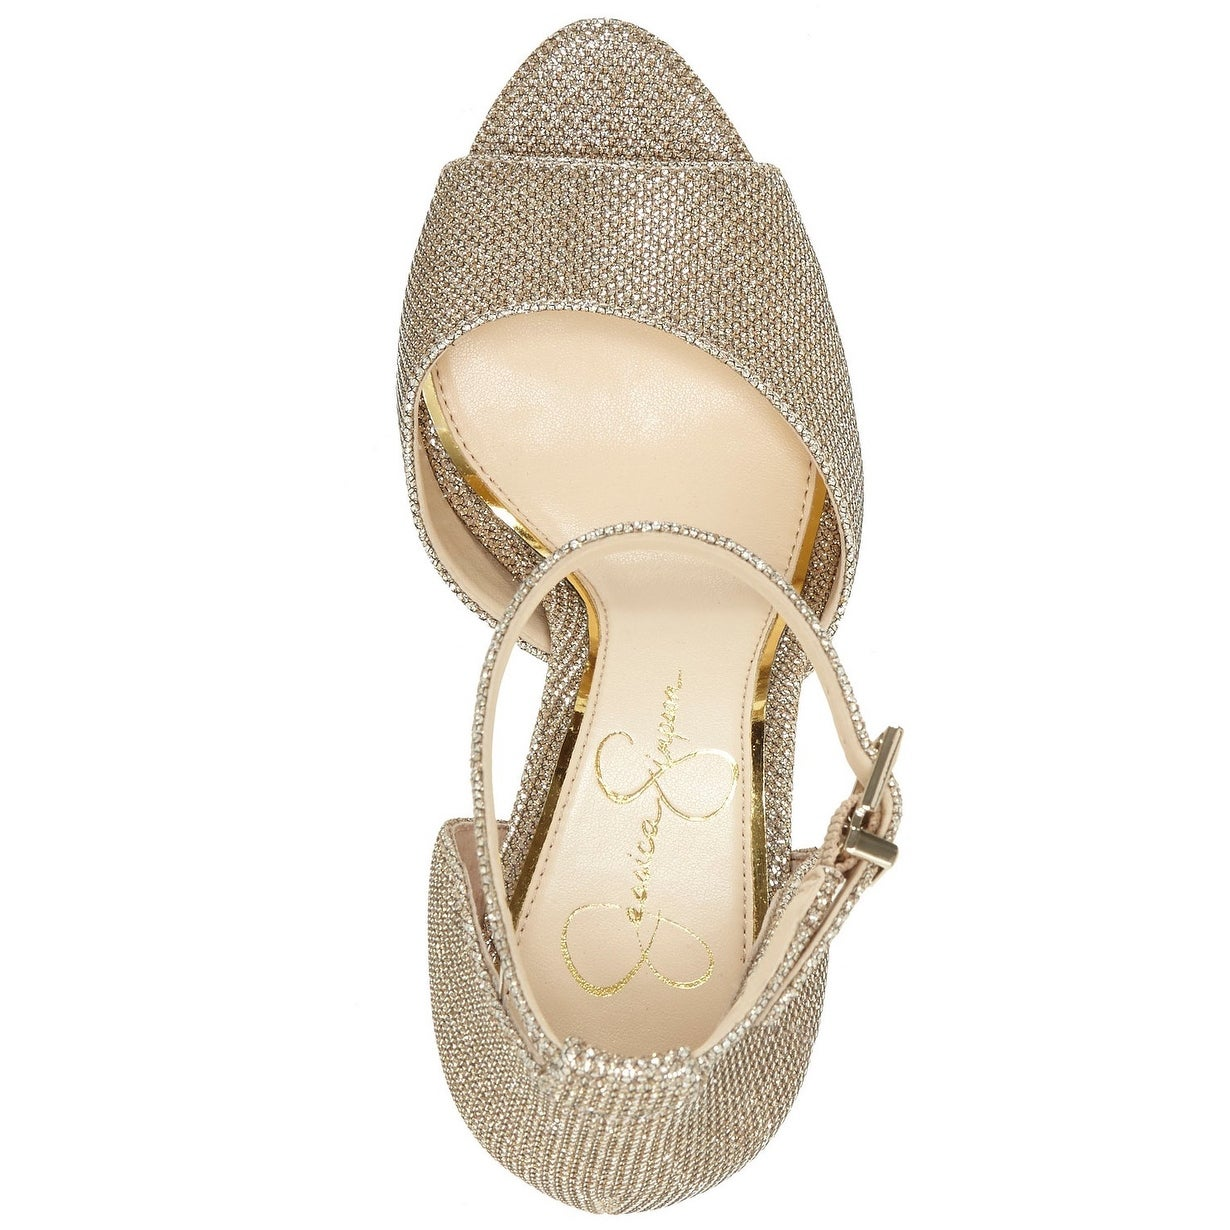 b60822cfe673 Shop Jessica Simpson Womens Beeya Leather Peep Toe Ankle Strap D-orsay  Pumps - Free Shipping Today - Overstock - 27470095